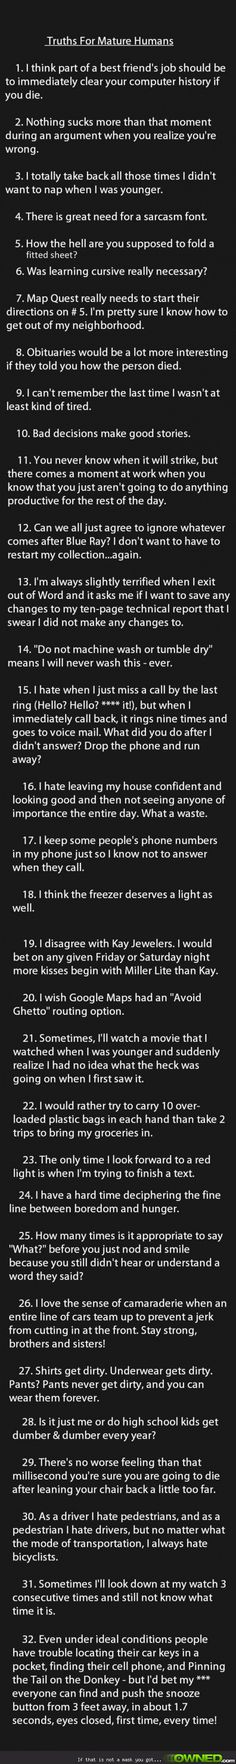 i agree with every single thing on this list